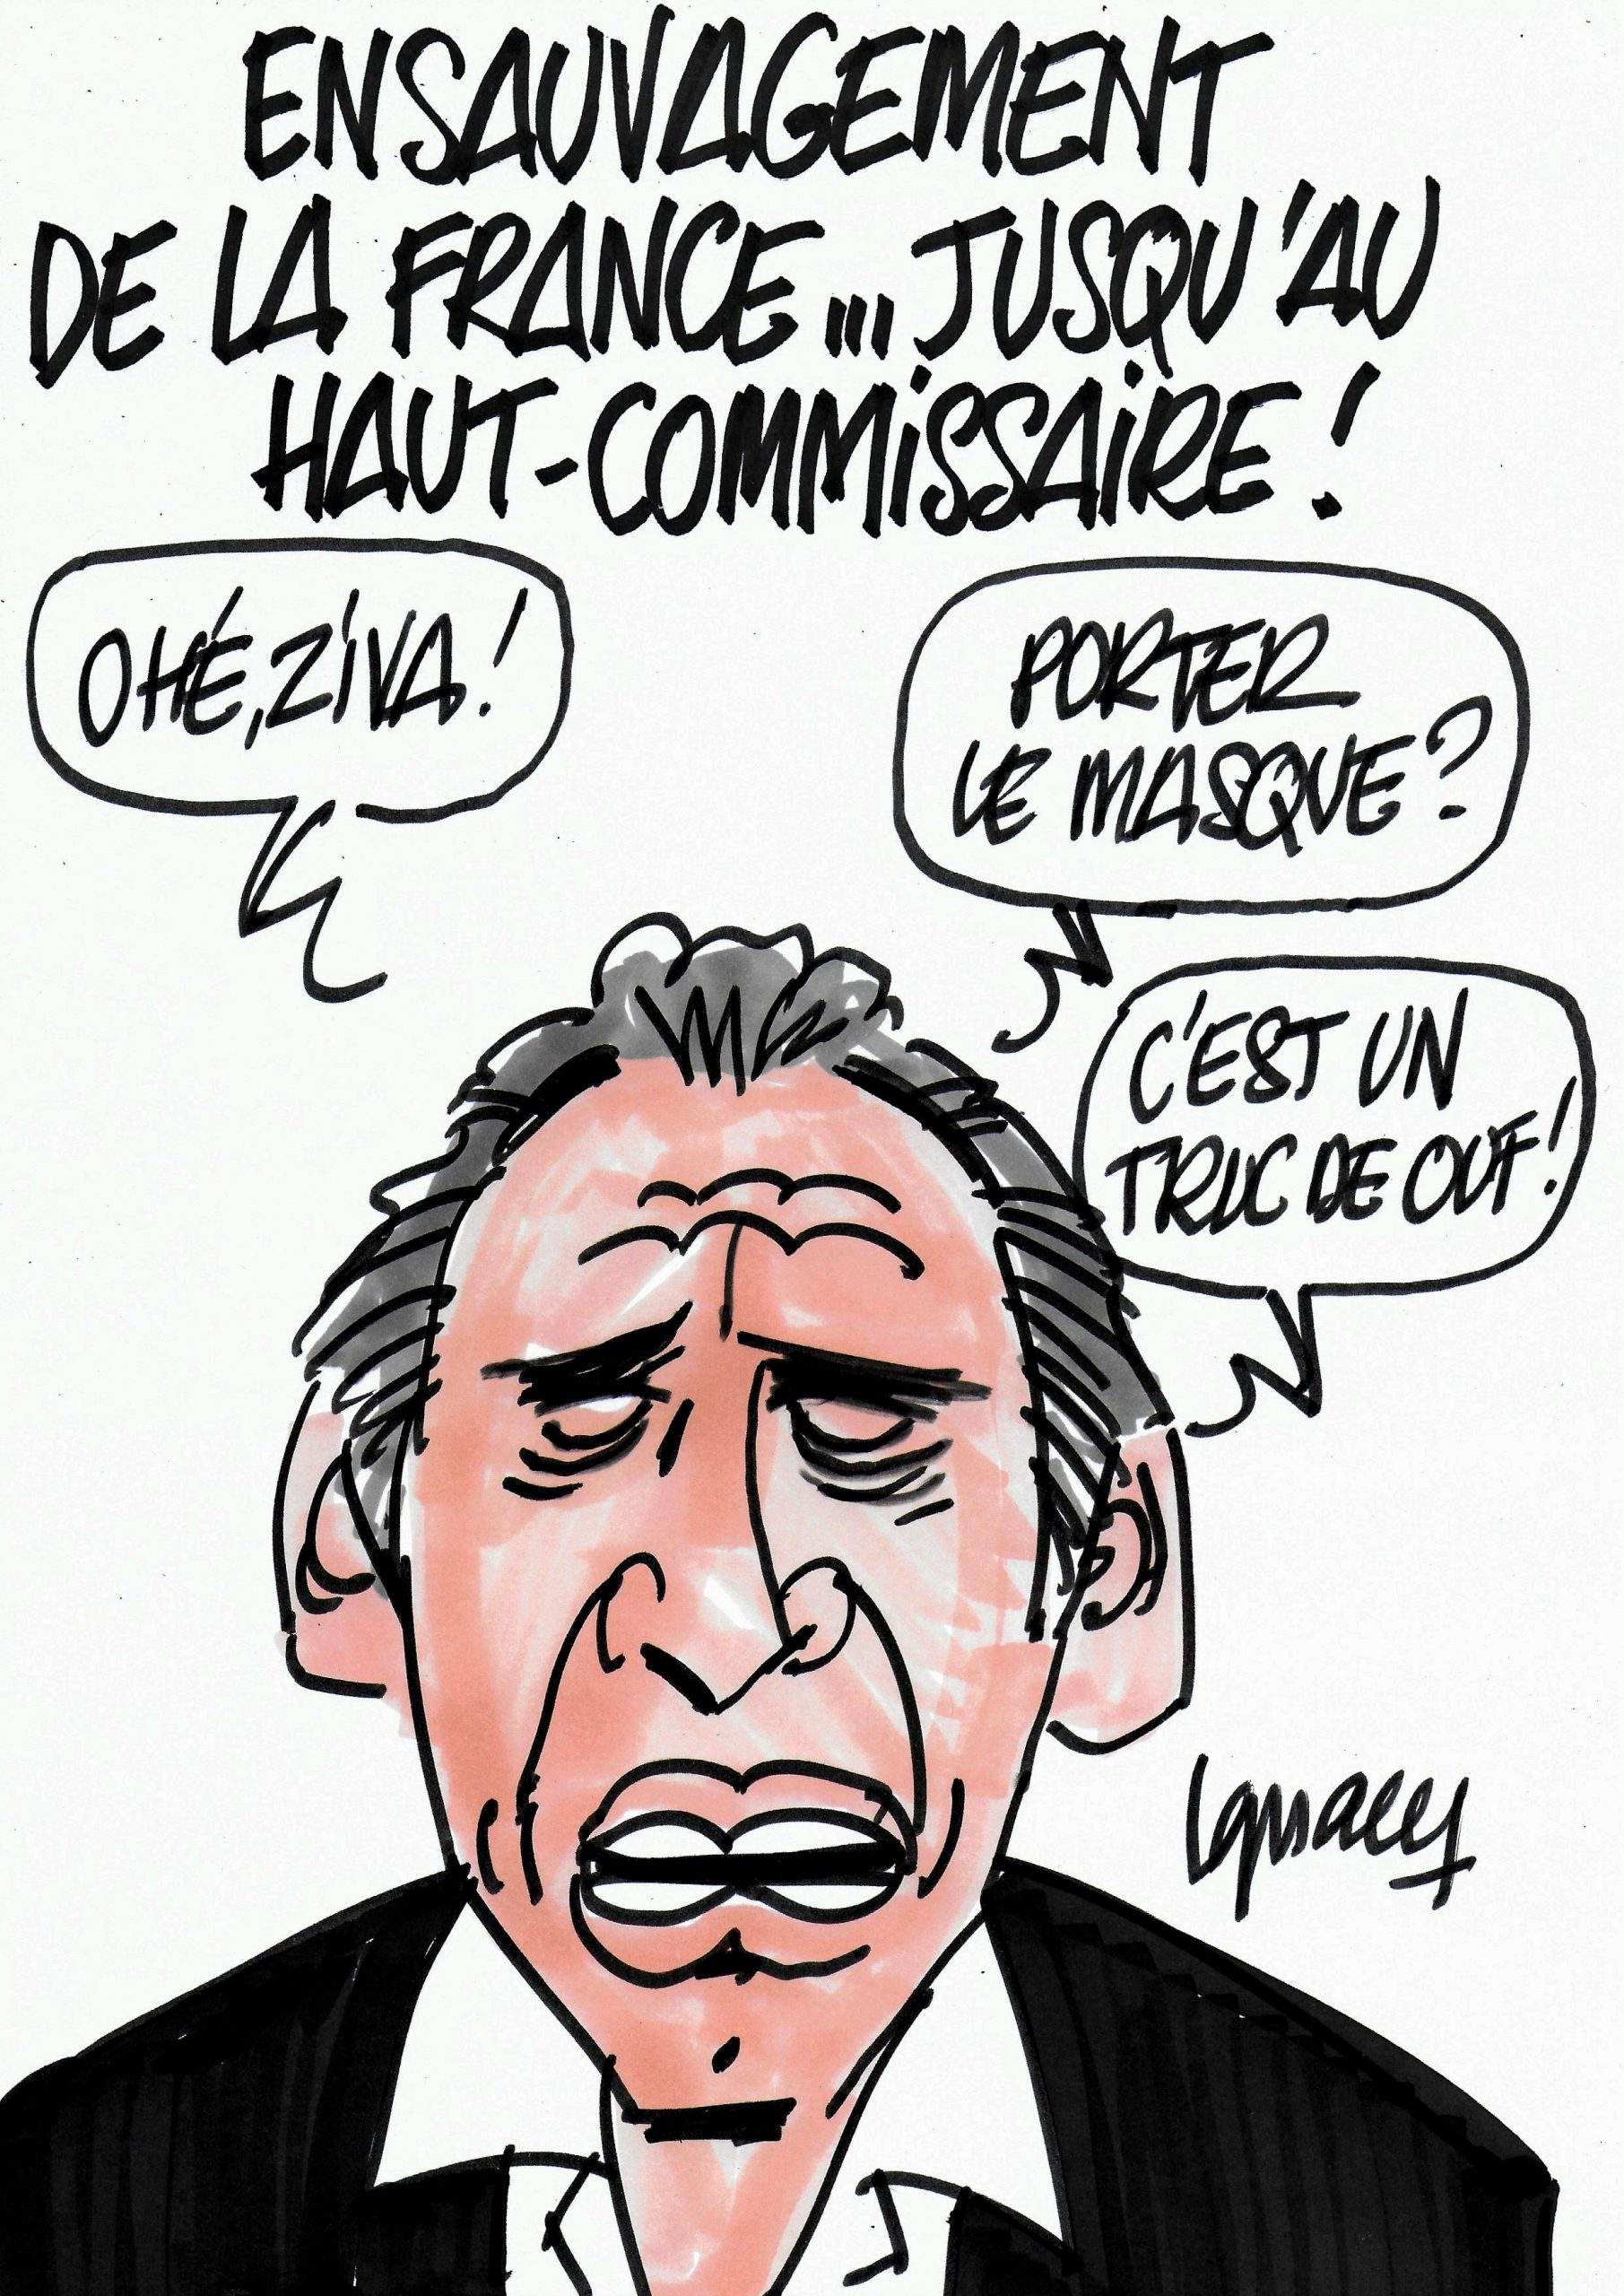 ignace_bayrou_masque_ensauvagement_france-mpi